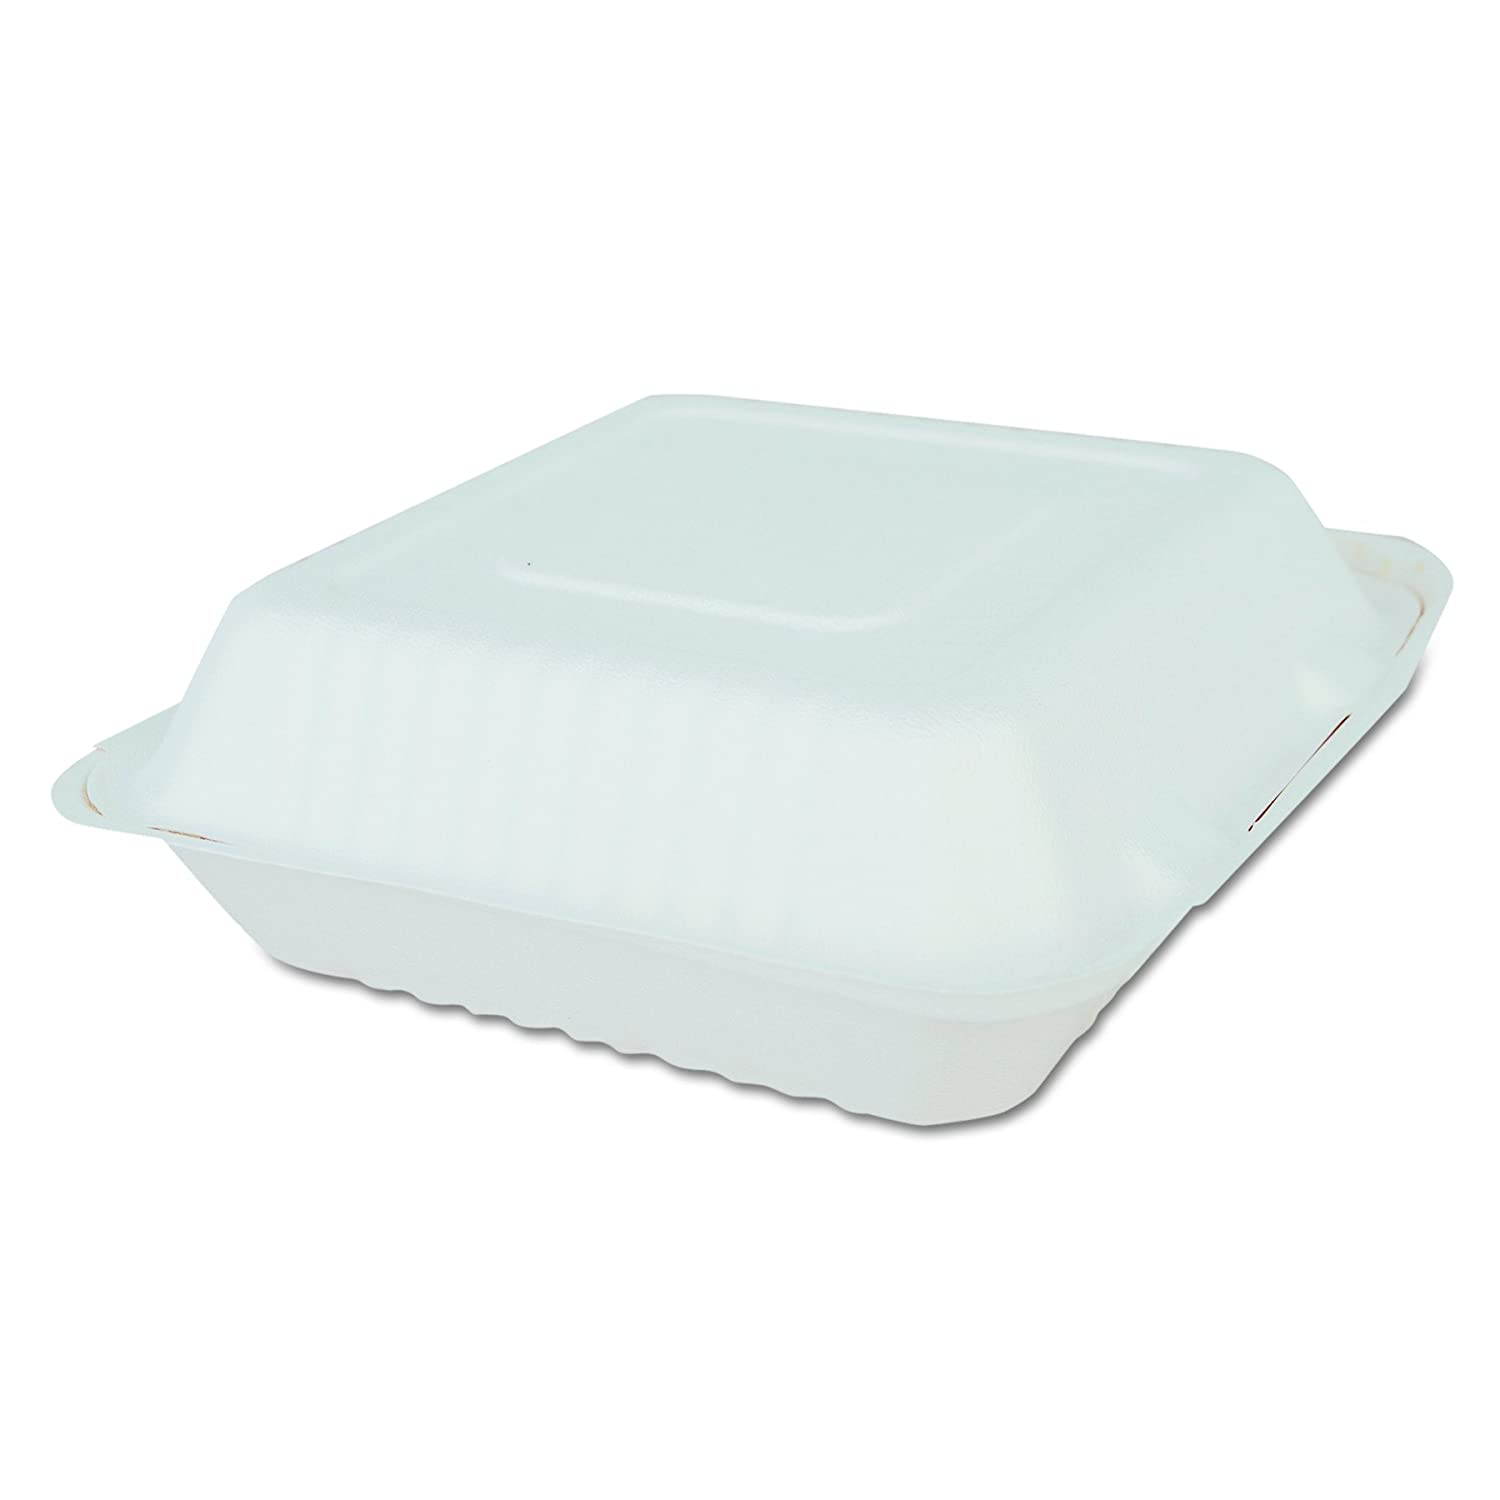 SCT 18935 ChampWare Molded-Fiber Clamshell Containers, 9w x 9d x 3h, White (Case of 200)